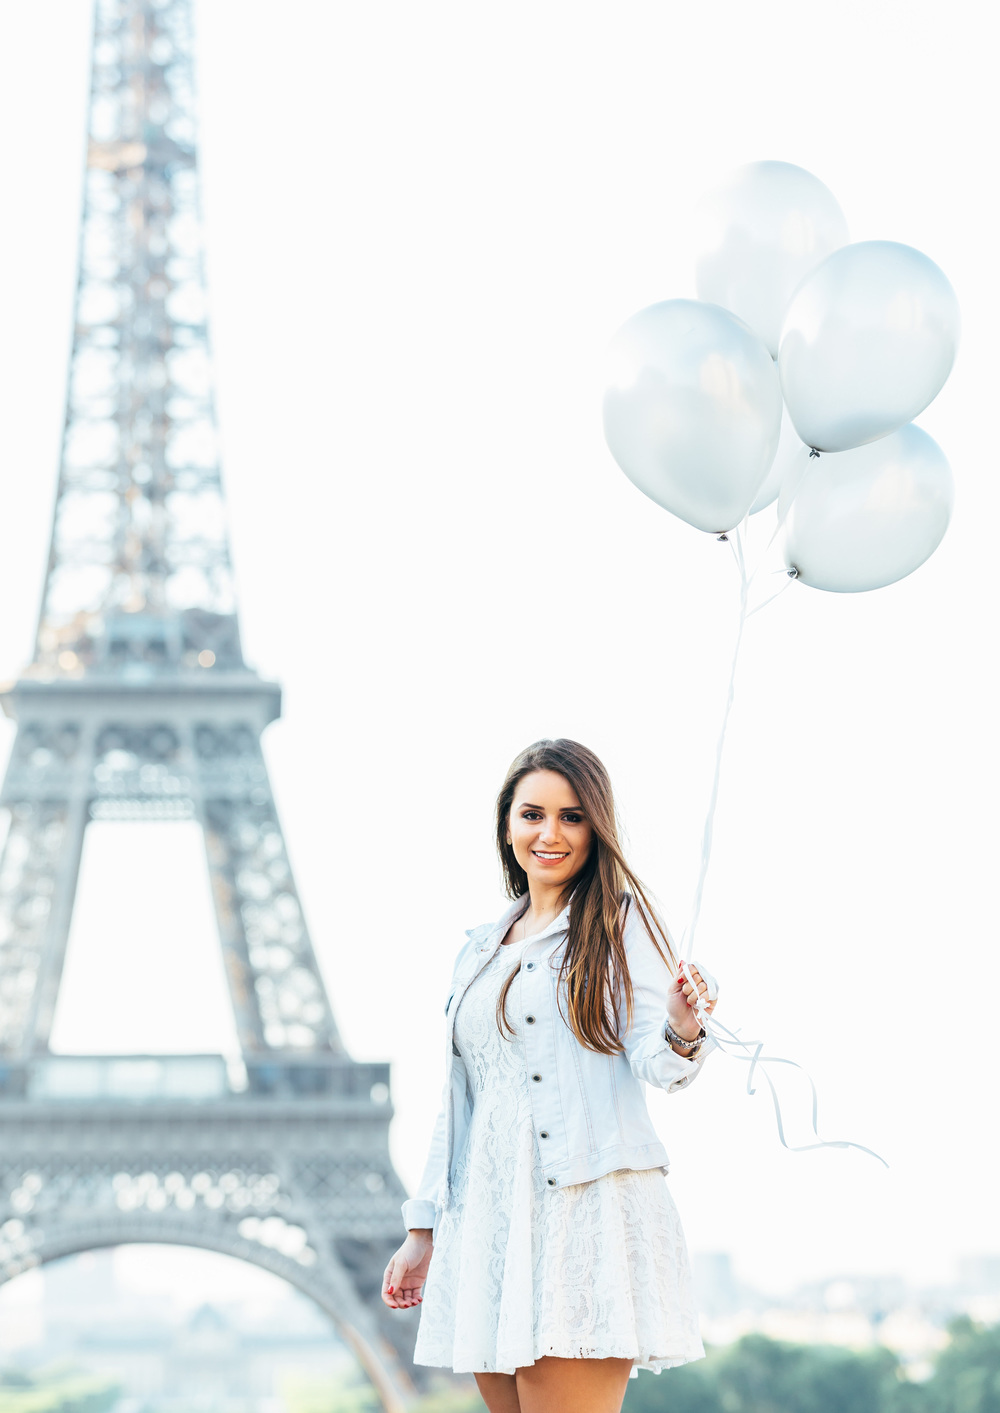 Photographer in Paris Eiffel Tower Lovestory Couple Trocadero balloons summer Iheartparisfr